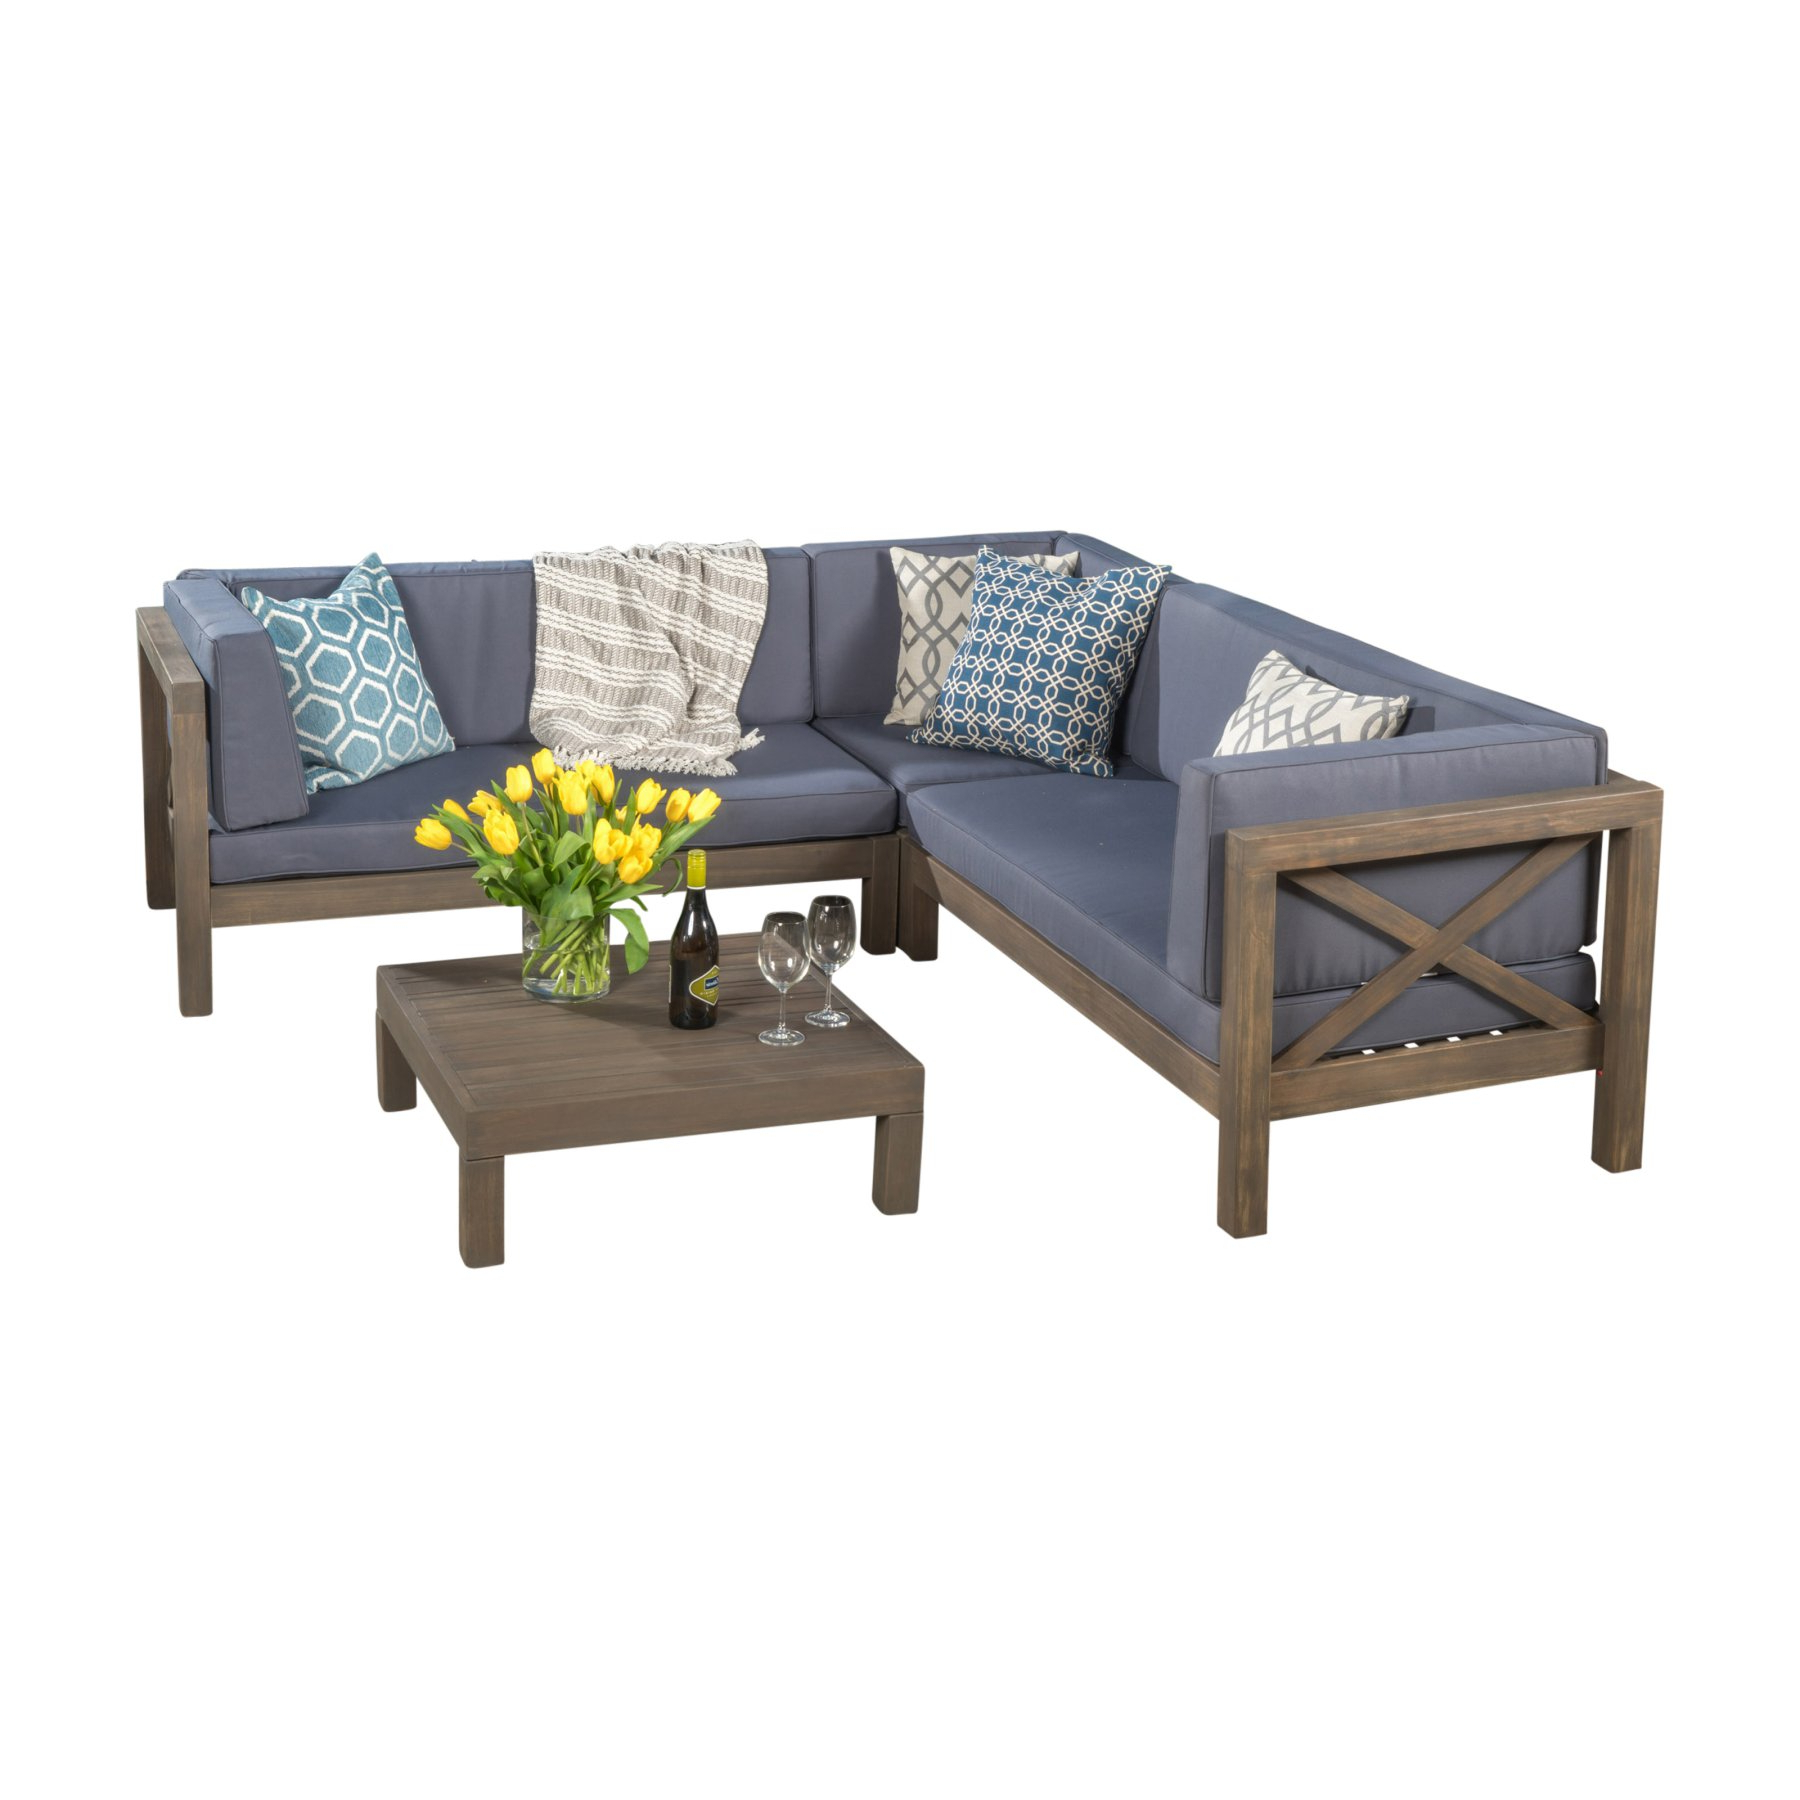 Outdoor Best Selling Home Brava Acacia Wood 6 Piece Pertaining To Most Recently Released Ellison Patio Sectionals With Cushions (View 16 of 20)